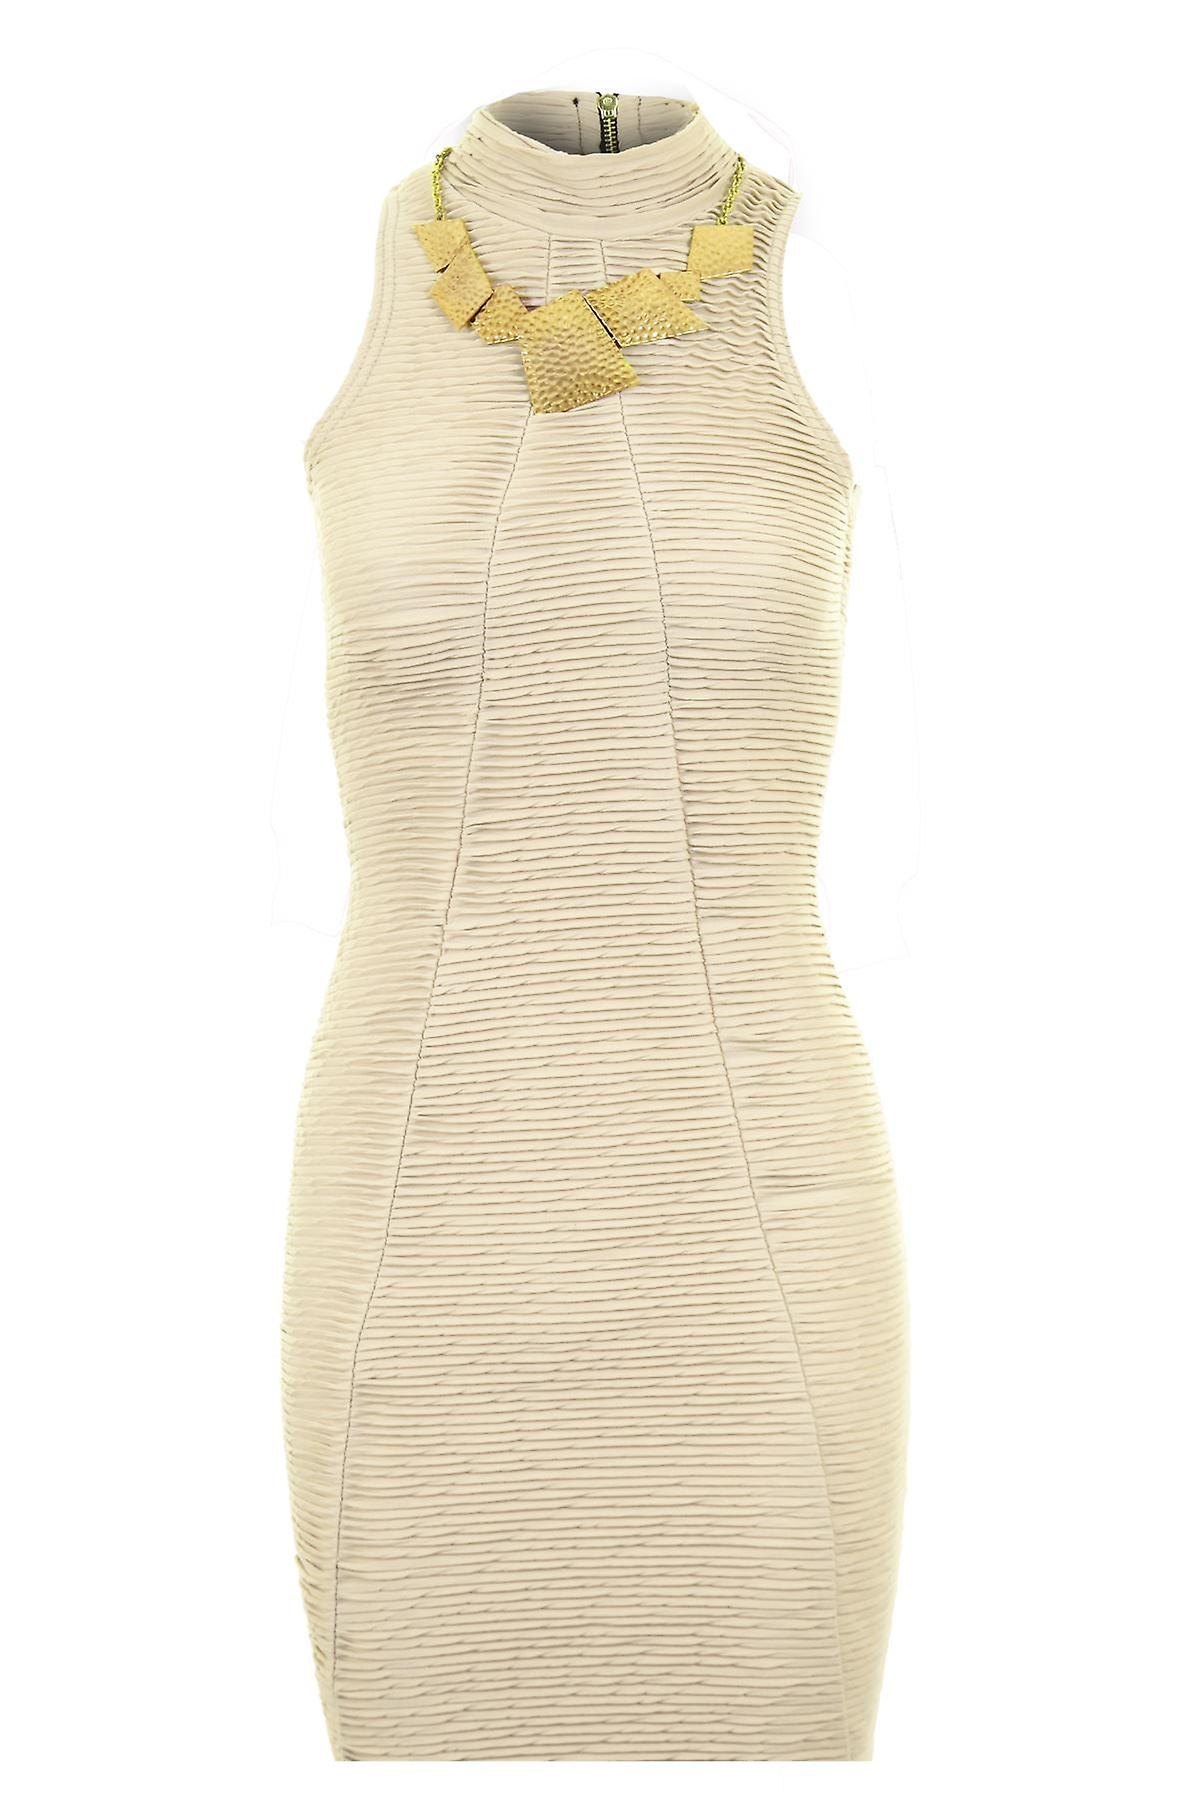 Ladies Sleeveless Turtle Neck Ribbed Back Zip Gold Necklace Women's Bodycon Dress